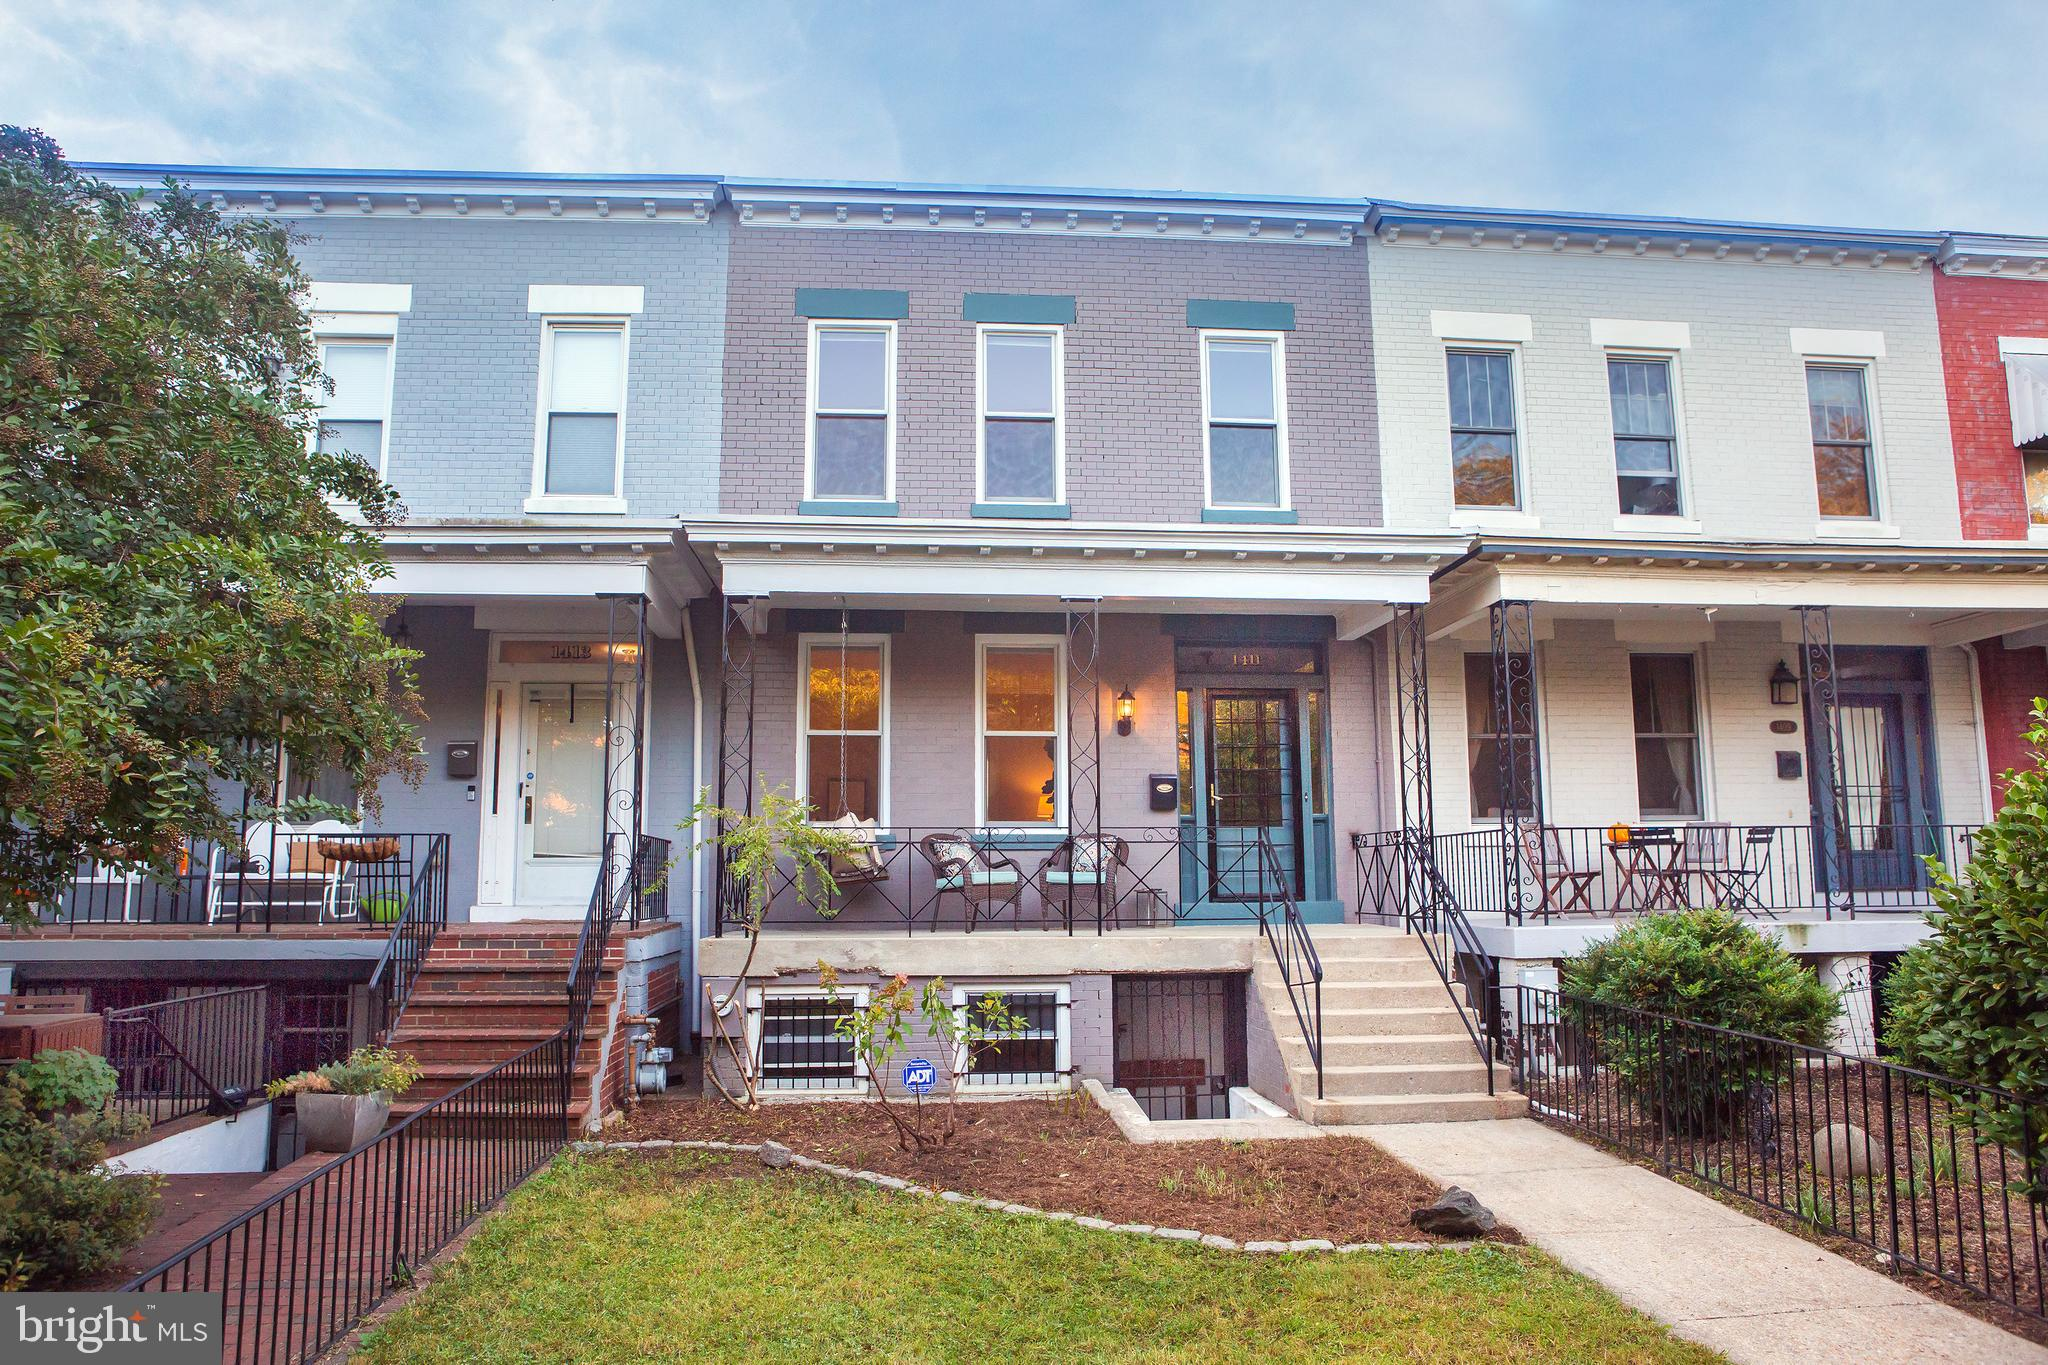 SPECTACULARLY SUNNY, SPACIOUS & WIDE PORCHFRONT HOME with Great Outdoor Space and Large Garage Steps from Lincoln Park and Eastern Market Offers a Wonderful Blend of Original Features and Modern Amenities in an Amazing Capitol HILL Location!  Finished on all Three Levels, Separate Living and Dining Rooms with High Ceilings, Crown Molding and Heart Pine Flooring, a Large Gourmet Kitchen with Hardwood Cabinets, Stainless Steel Appliances and Stone Countertops! Three Bedrooms and Fully Appointed Bathroom Upstairs, Finished Connected Basement with Front and Rear Entrances, a Recreation Room and a Full Bath, plus Spacious Storage, and Front-Loading Laundry Downstairs! Many Original Features Throughout Include Original Woodwork and Flooring, Transom Windows, Smart Upgrades Including Double Pane Windows, Central Air Conditioning, Hot Water Radiator Heat, and More!  All on a Large Lot with a Deep Fully Fenced Front Yard, Full Width Porch with Swing, and Fully Fenced Backyard for Festive Picnic Dinners on the Spacious Private Patio!  First Opens Saturday & Sunday 1-3PM!